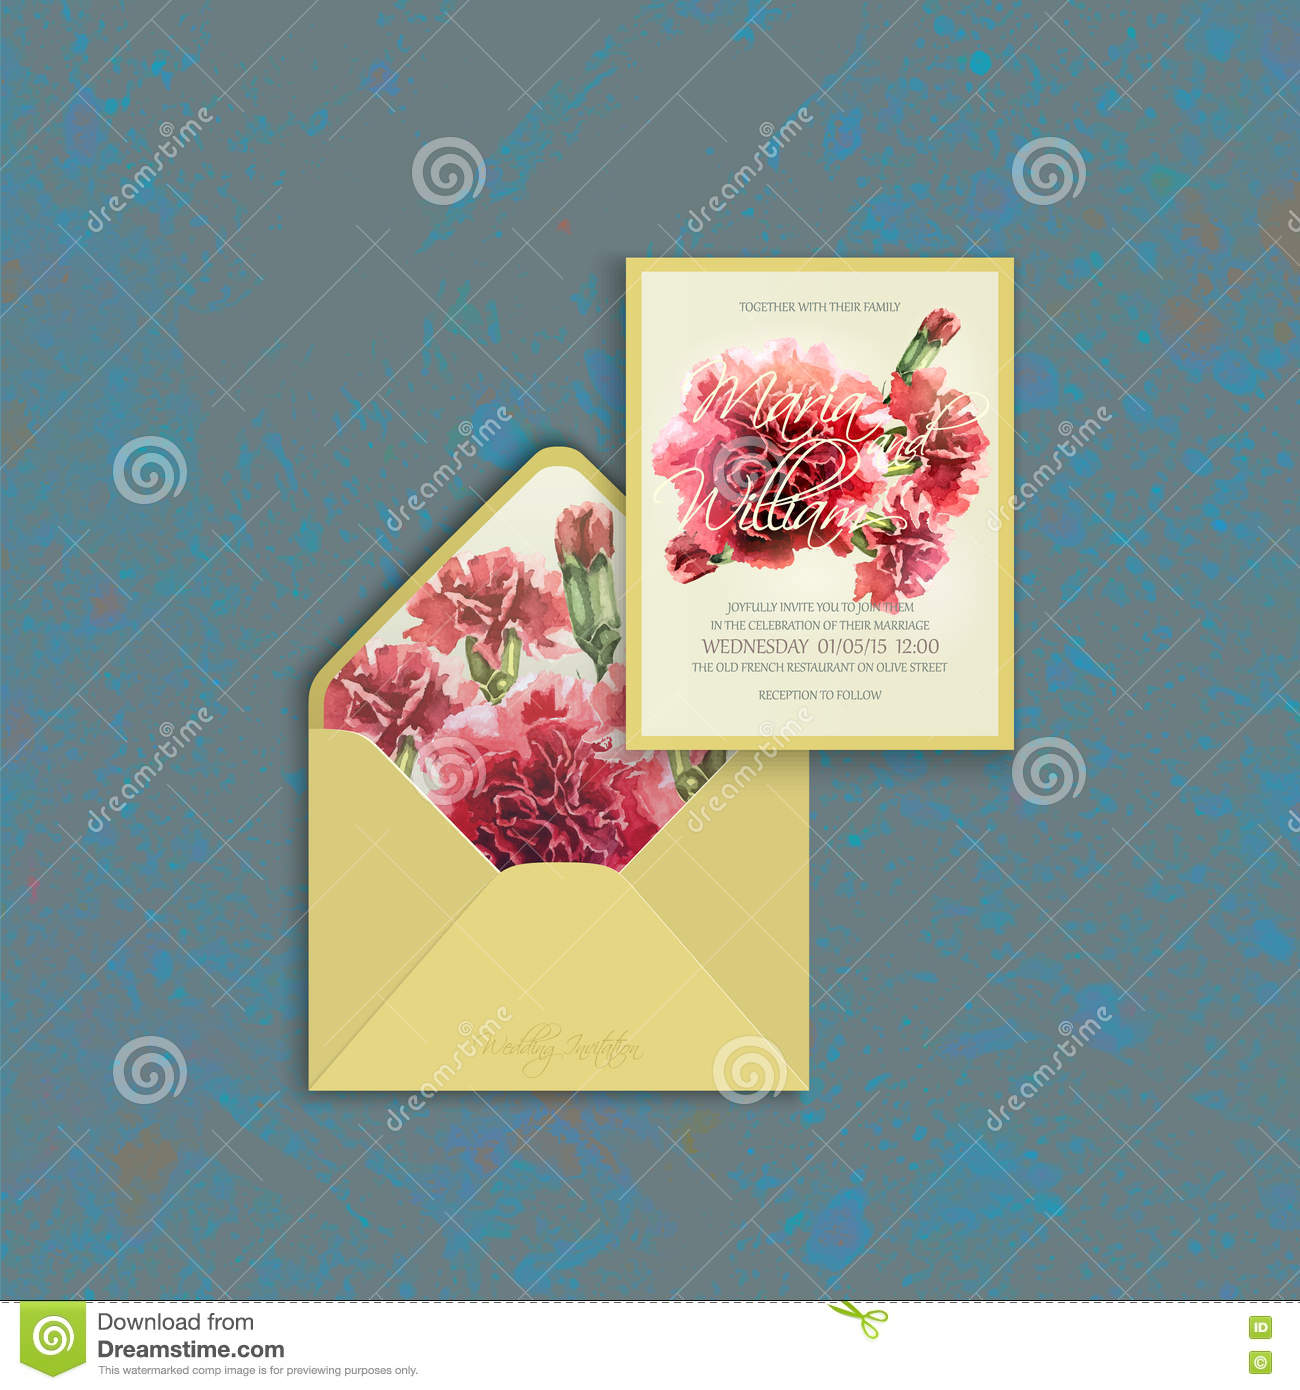 Wedding Card And Envelope Template With Watercolor Carnation – Wedding Card Envelope Template